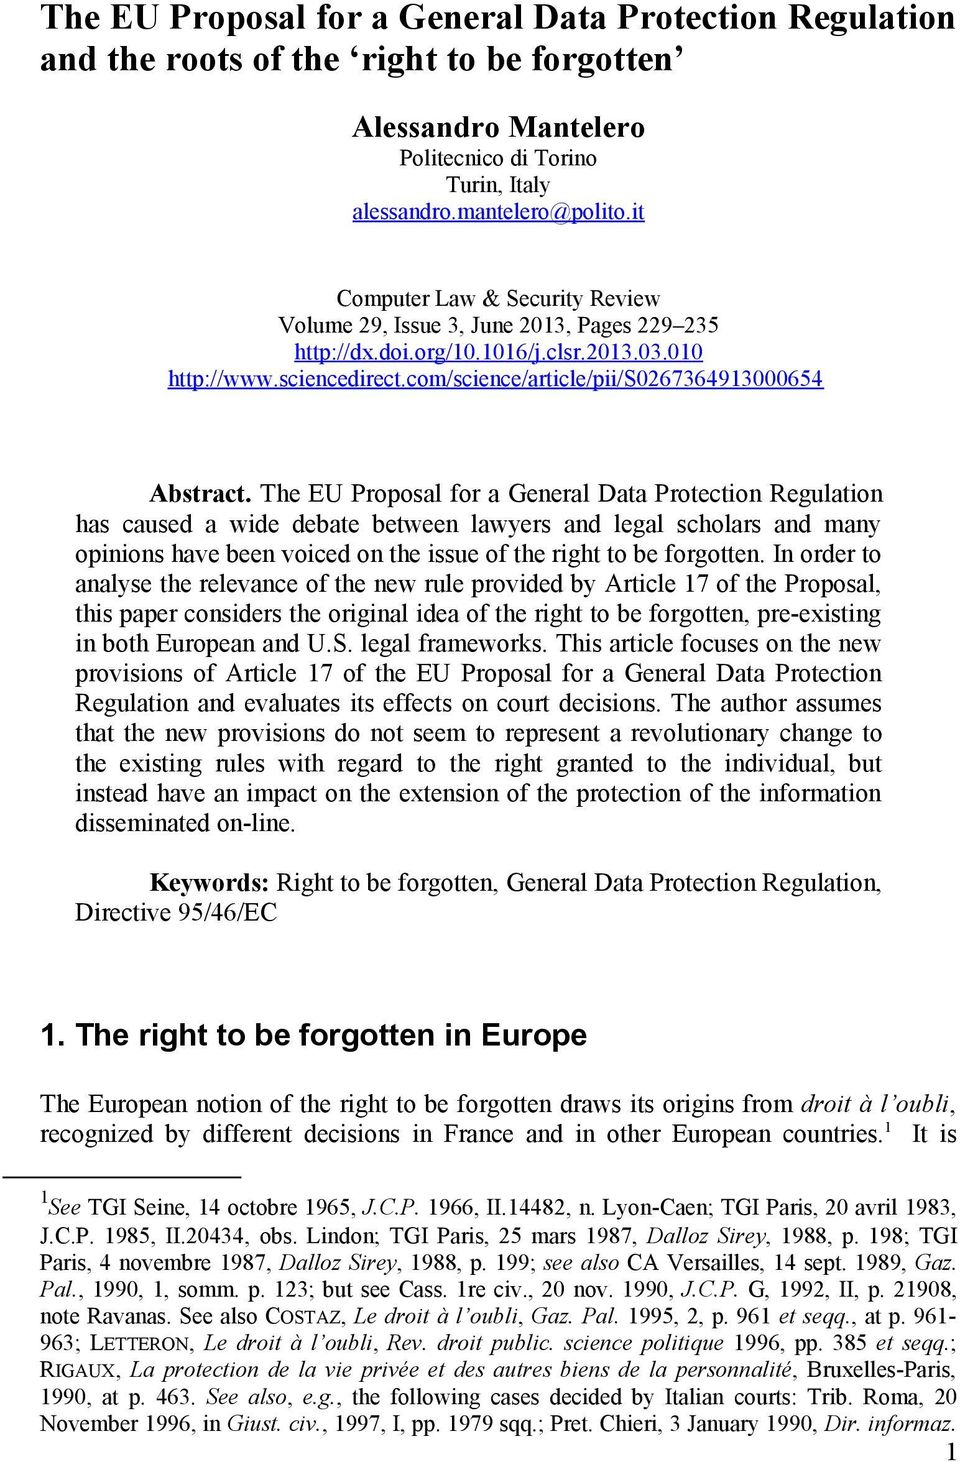 The EU Proposal for a General Data Protection Regulation has caused a wide debate between lawyers and legal scholars and many opinions have been voiced on the issue of the right to be forgotten.